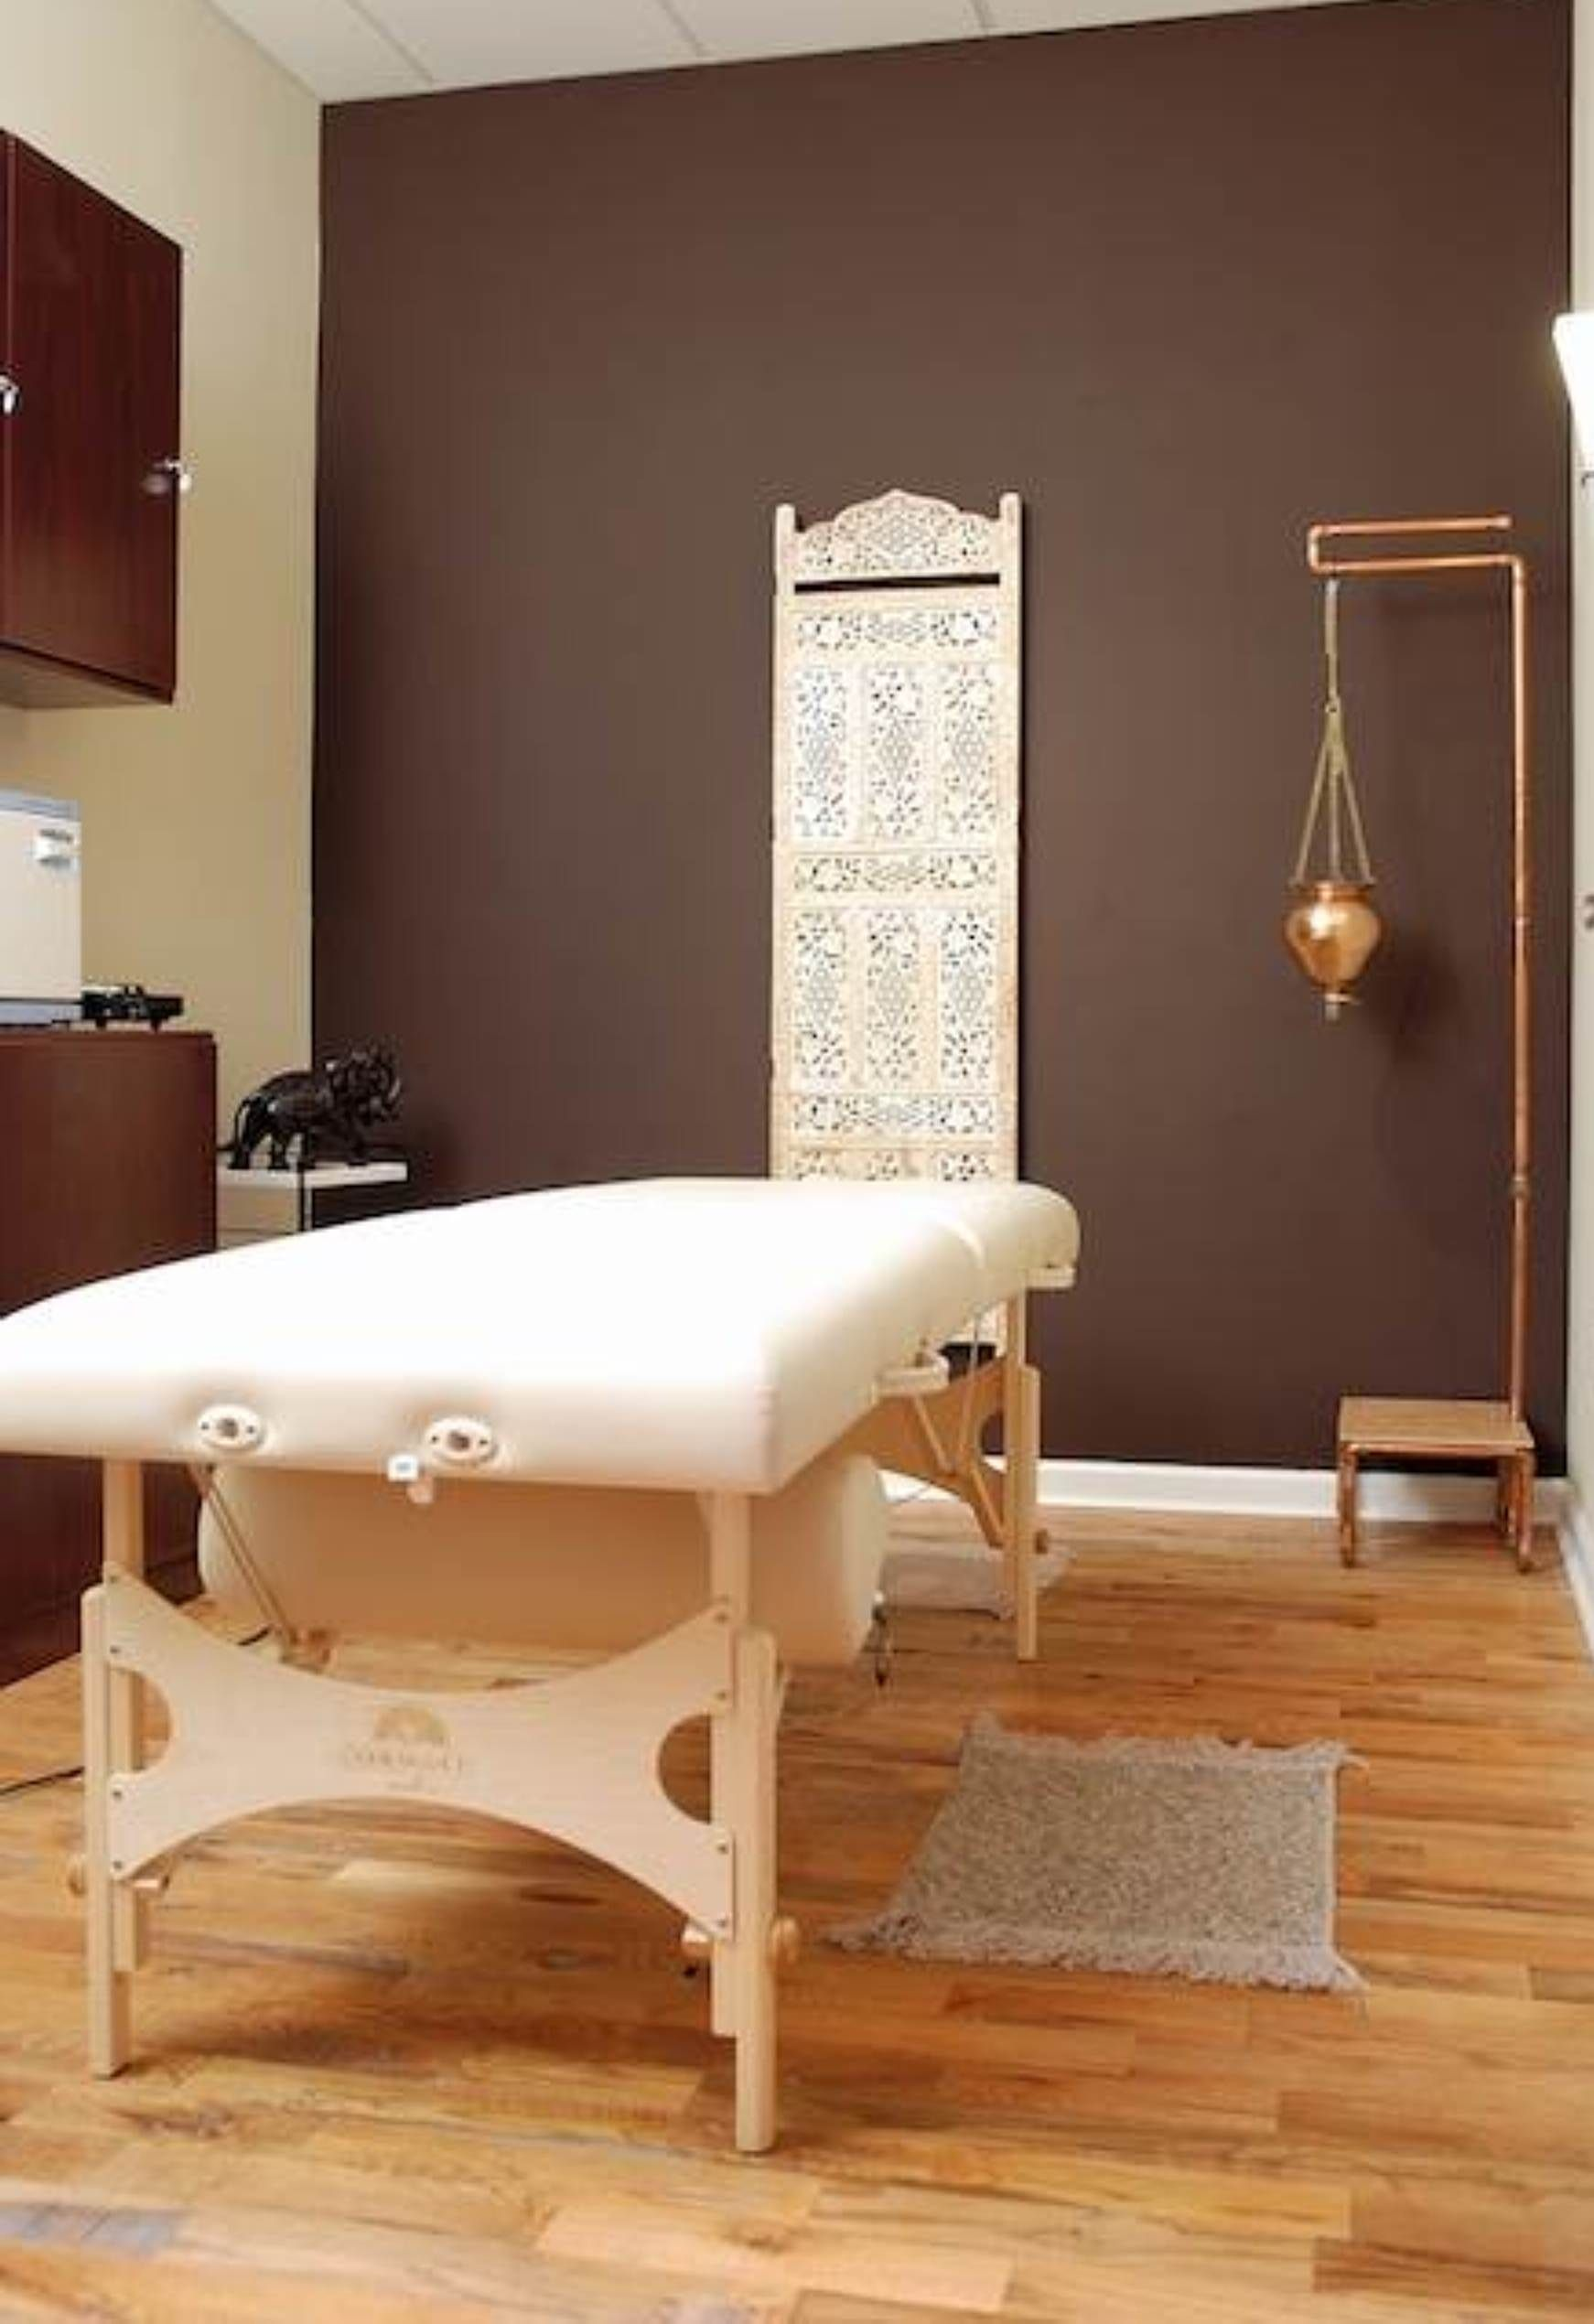 Massage Therapy Room Design Ideas: Previous Image Next Image